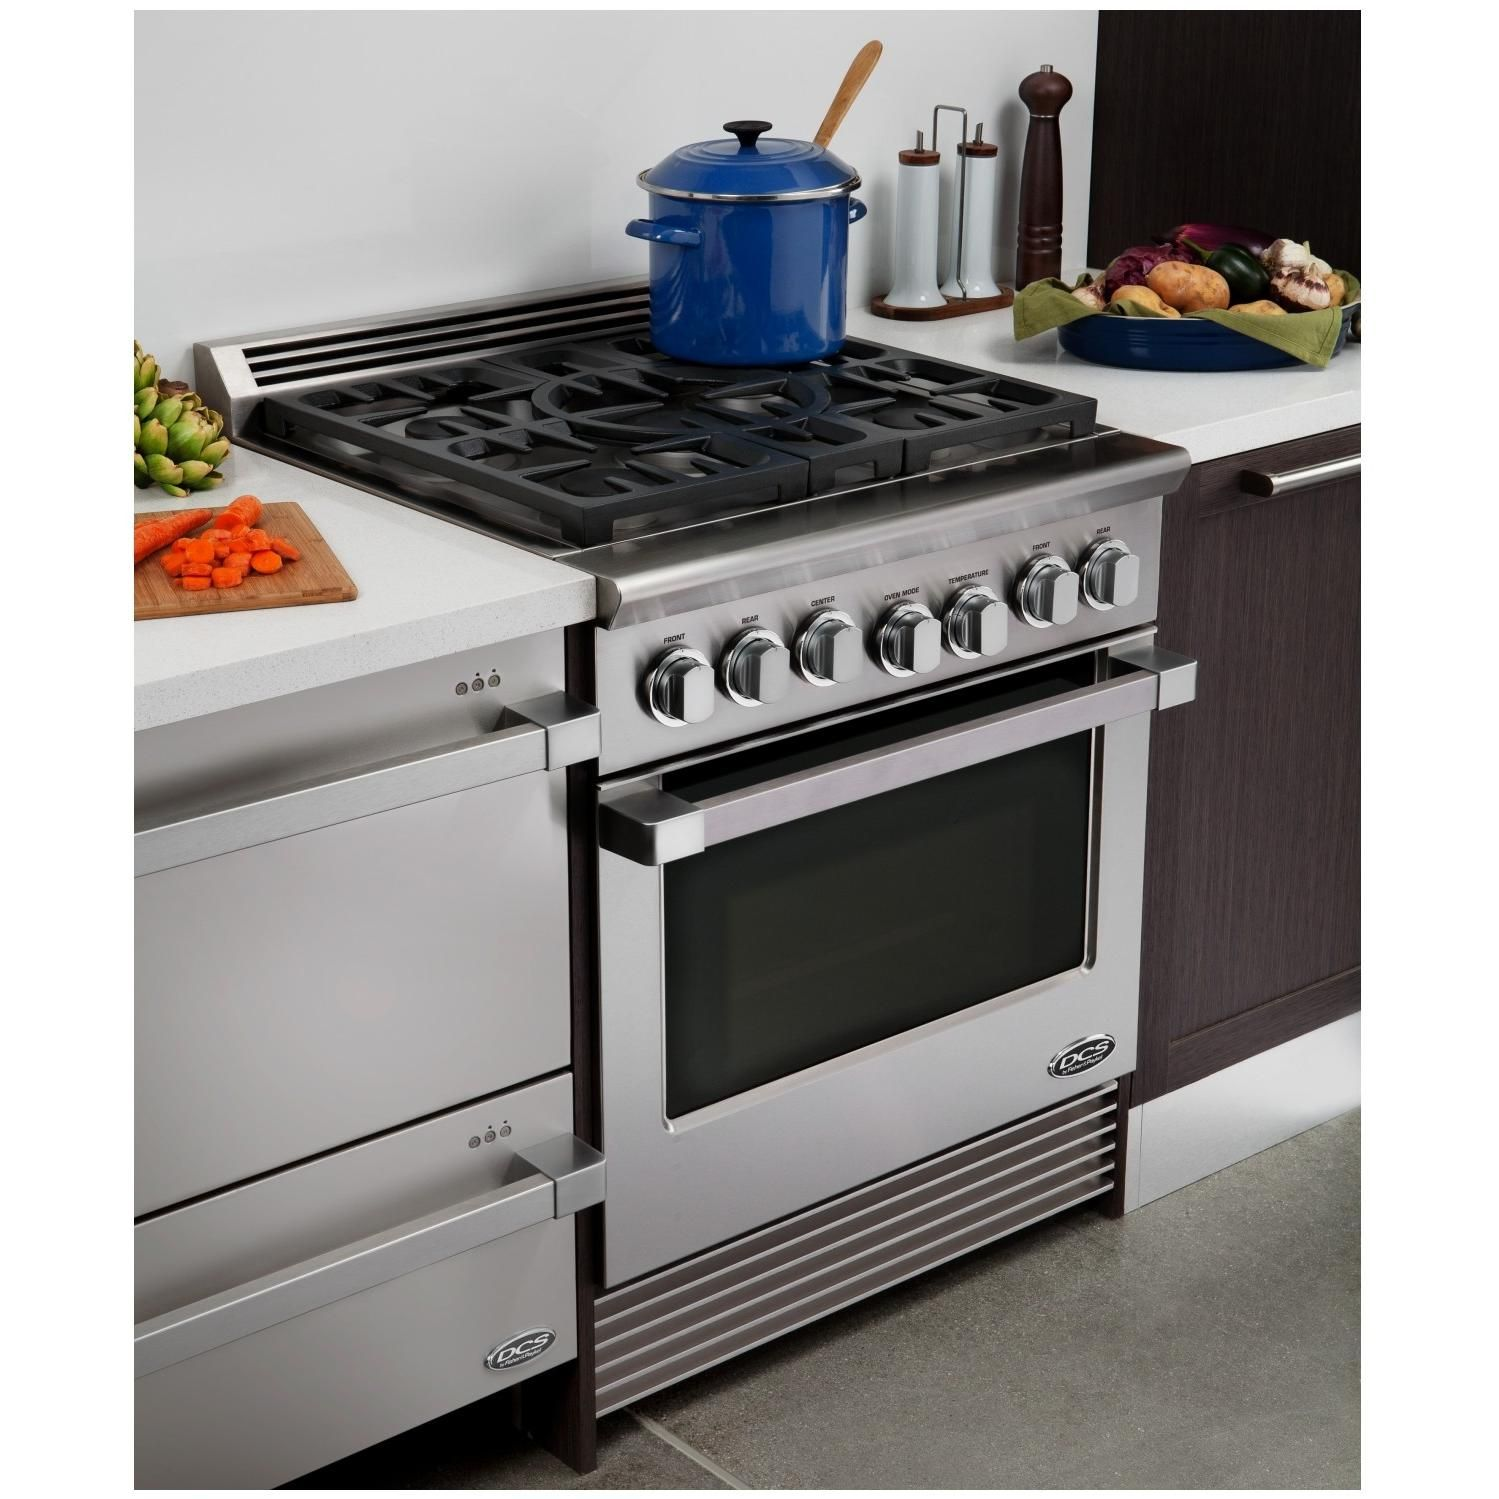 DCS Professional 30-Inch 5-Burner Natural Gas Range By Fisher Paykel ...